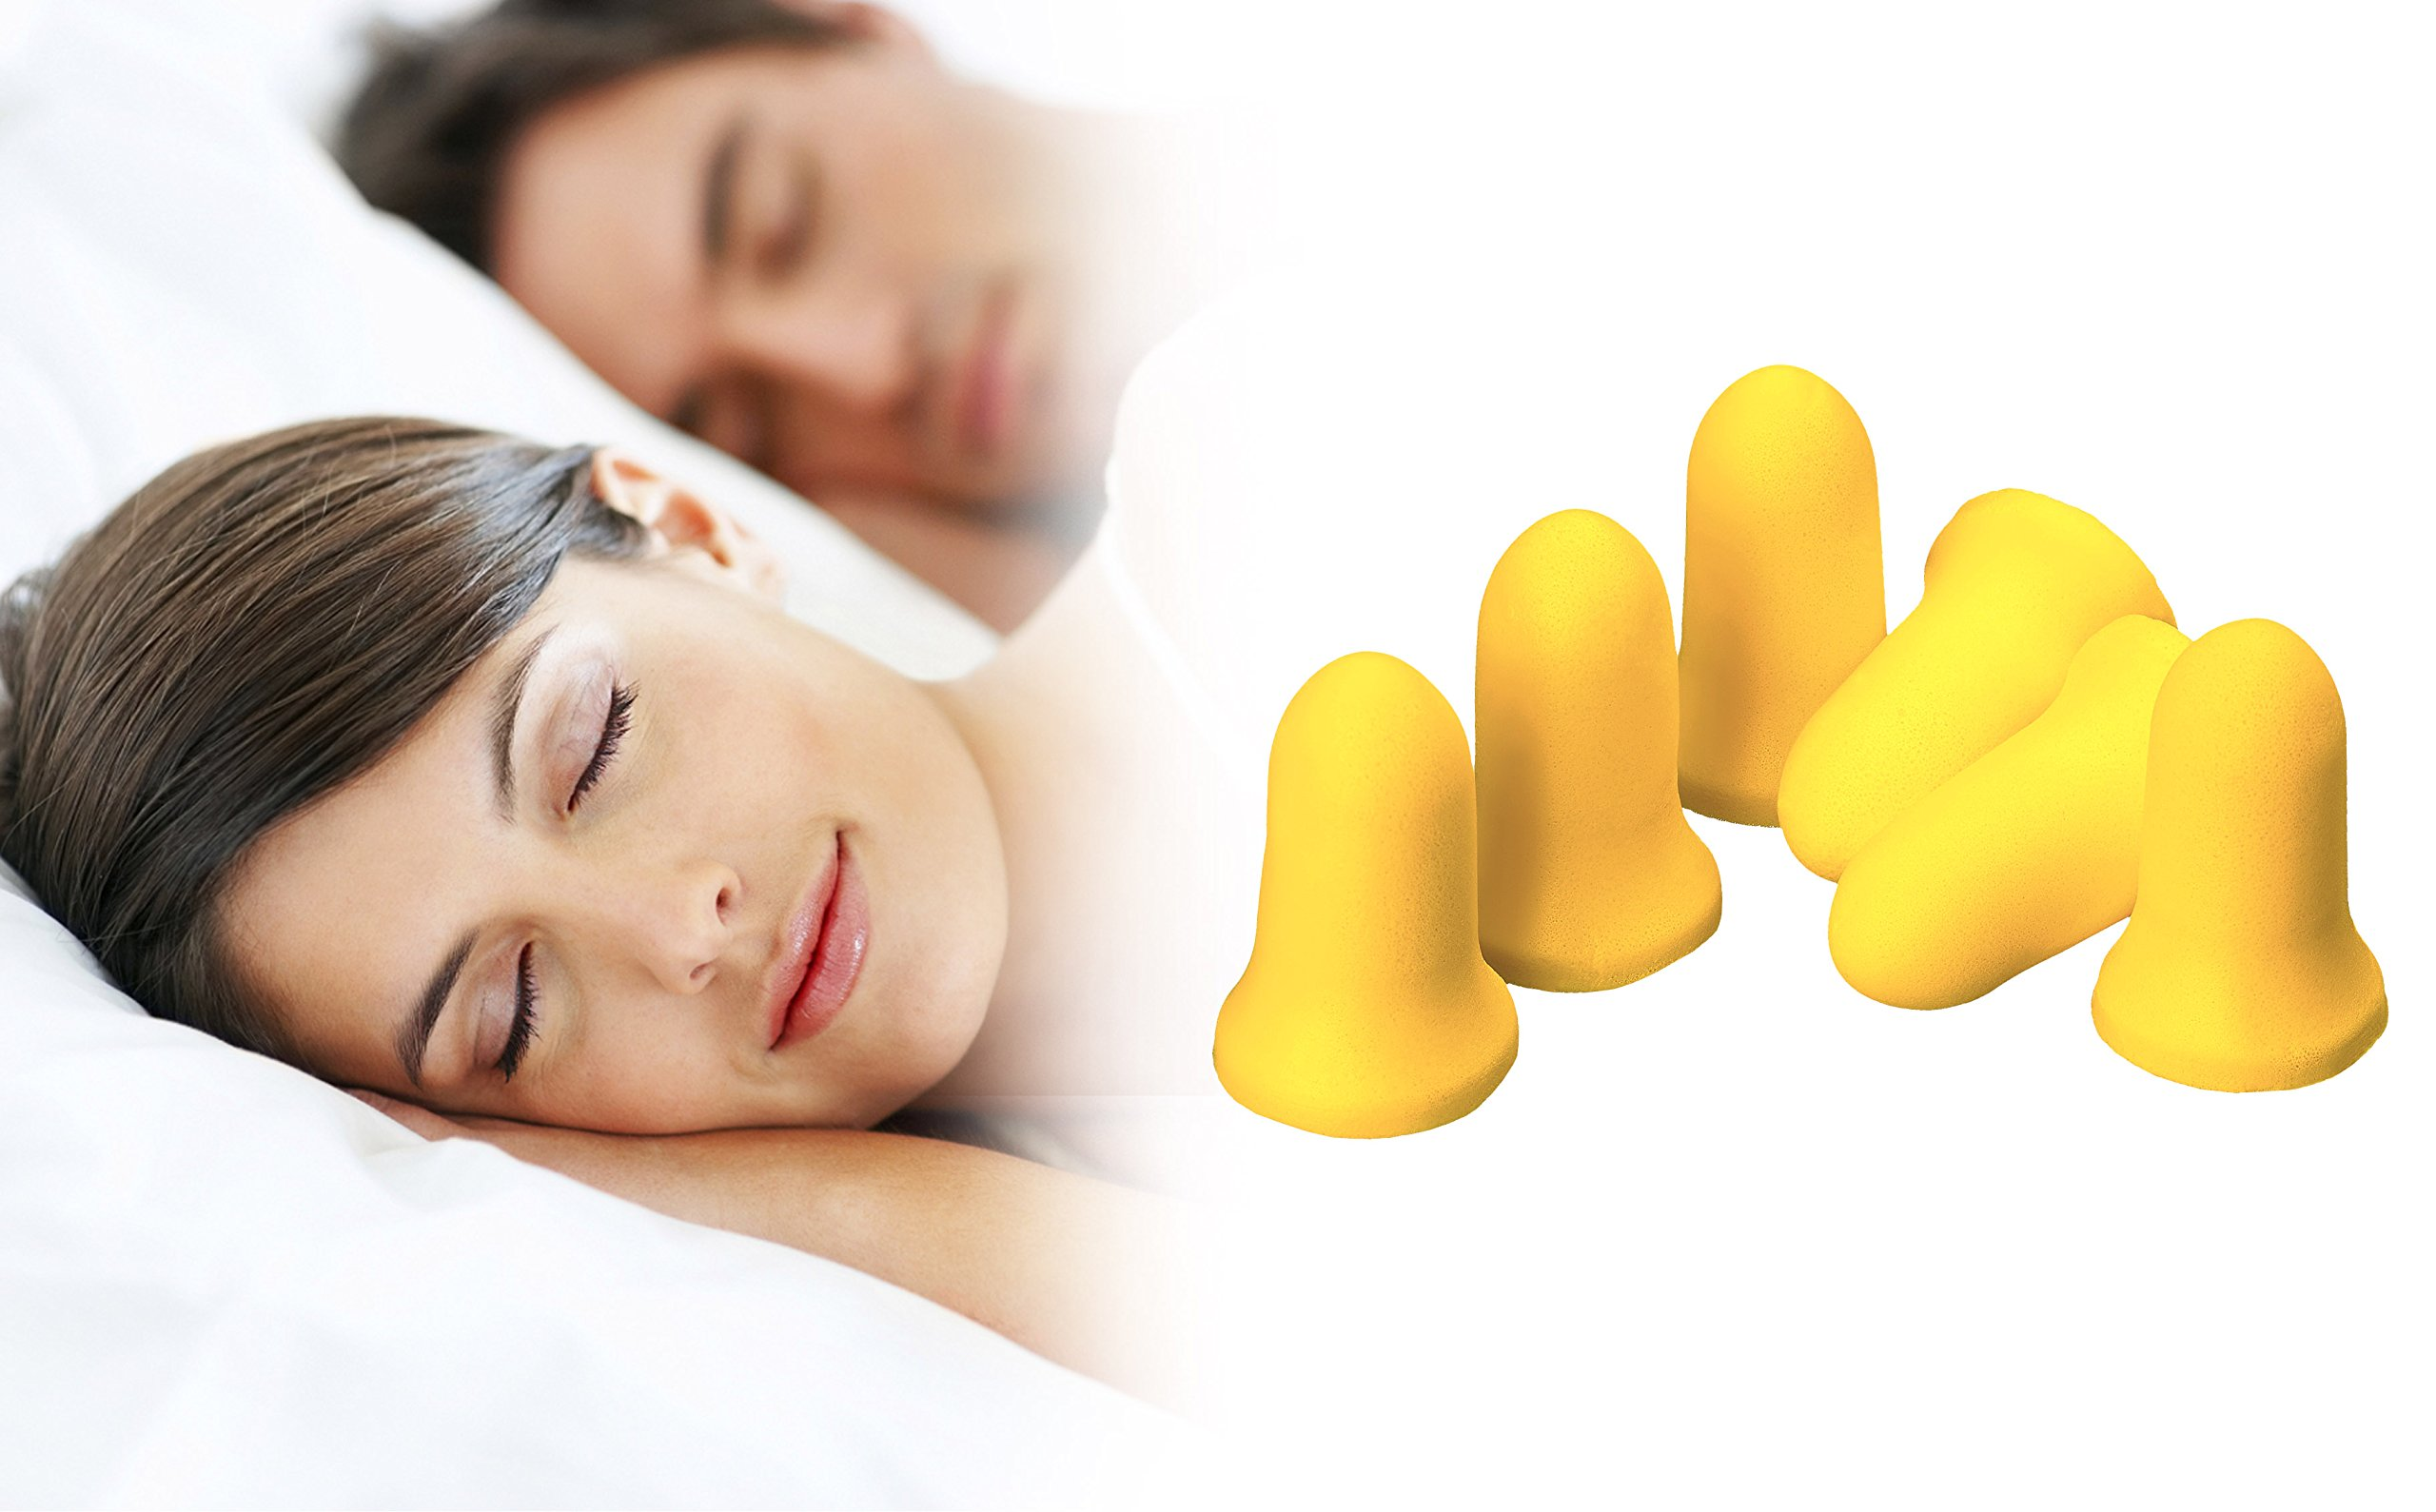 PQ Earplugs for Sleep - Comfortable & Reusable Ear Plugs for Side Sleepers - Sound Blocking Level 32 dB - Noise Cancelling for Snoring & Reusable Ear Plugs for Swimming & Traveling by Peace&Quiet (Image #2)